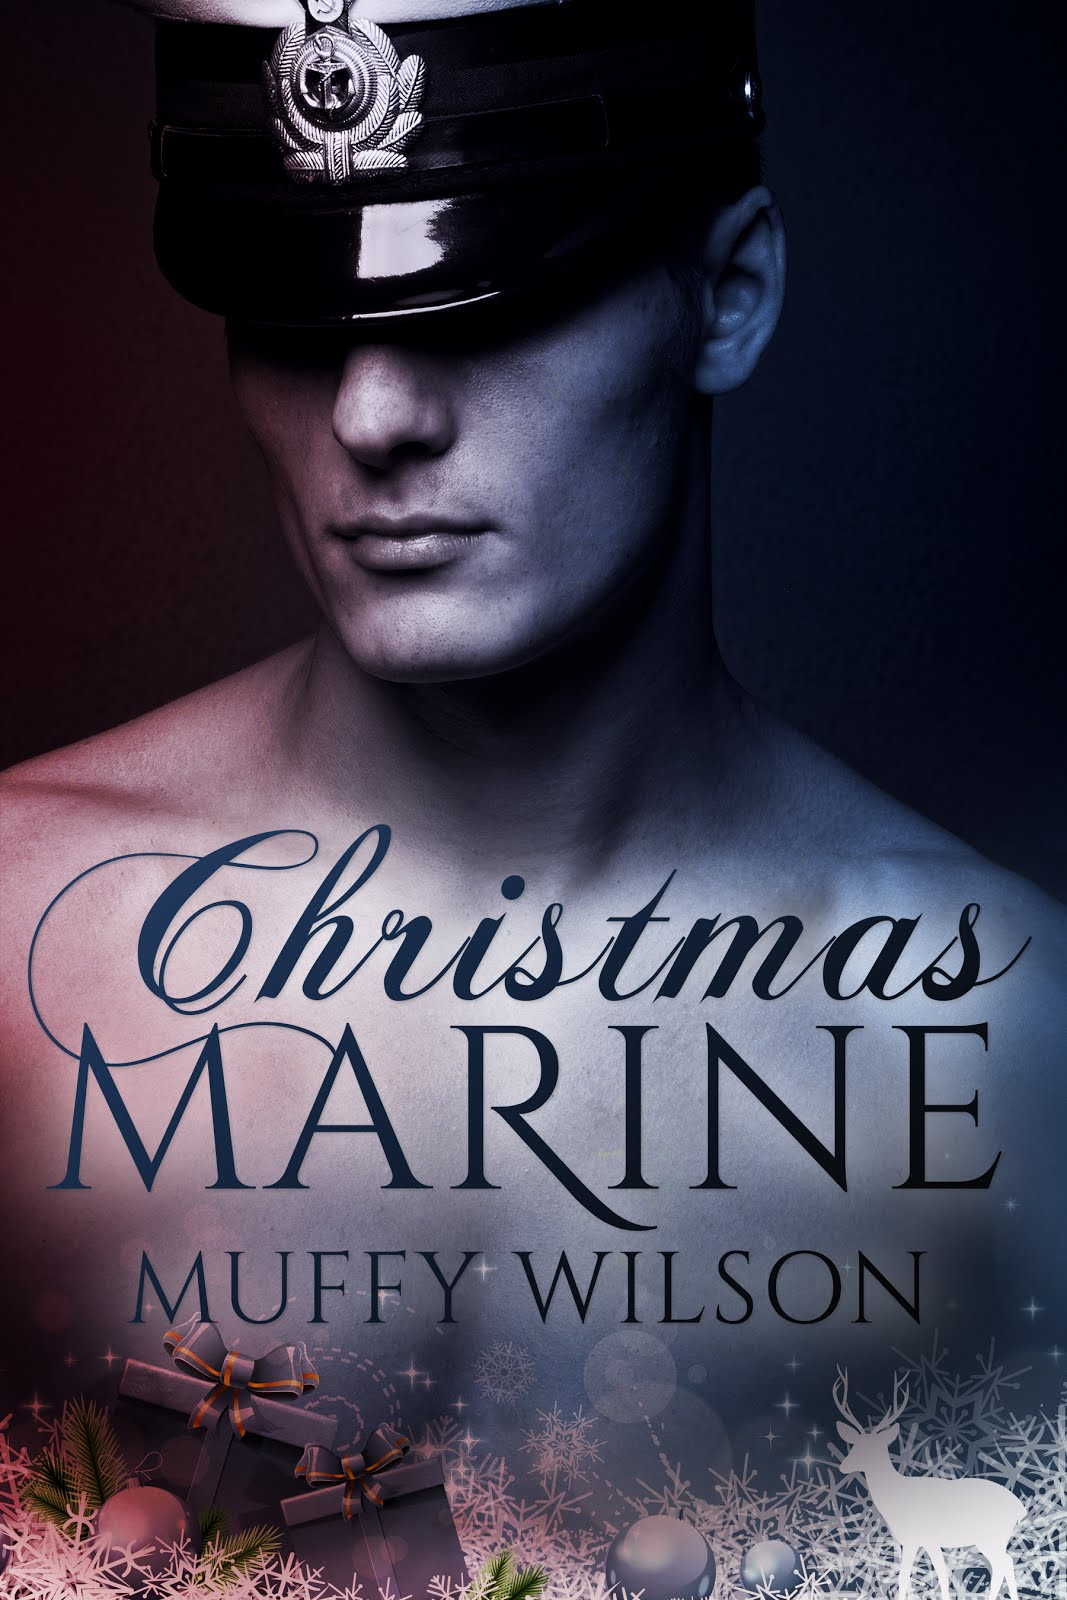 Carpe Christmas Marine!